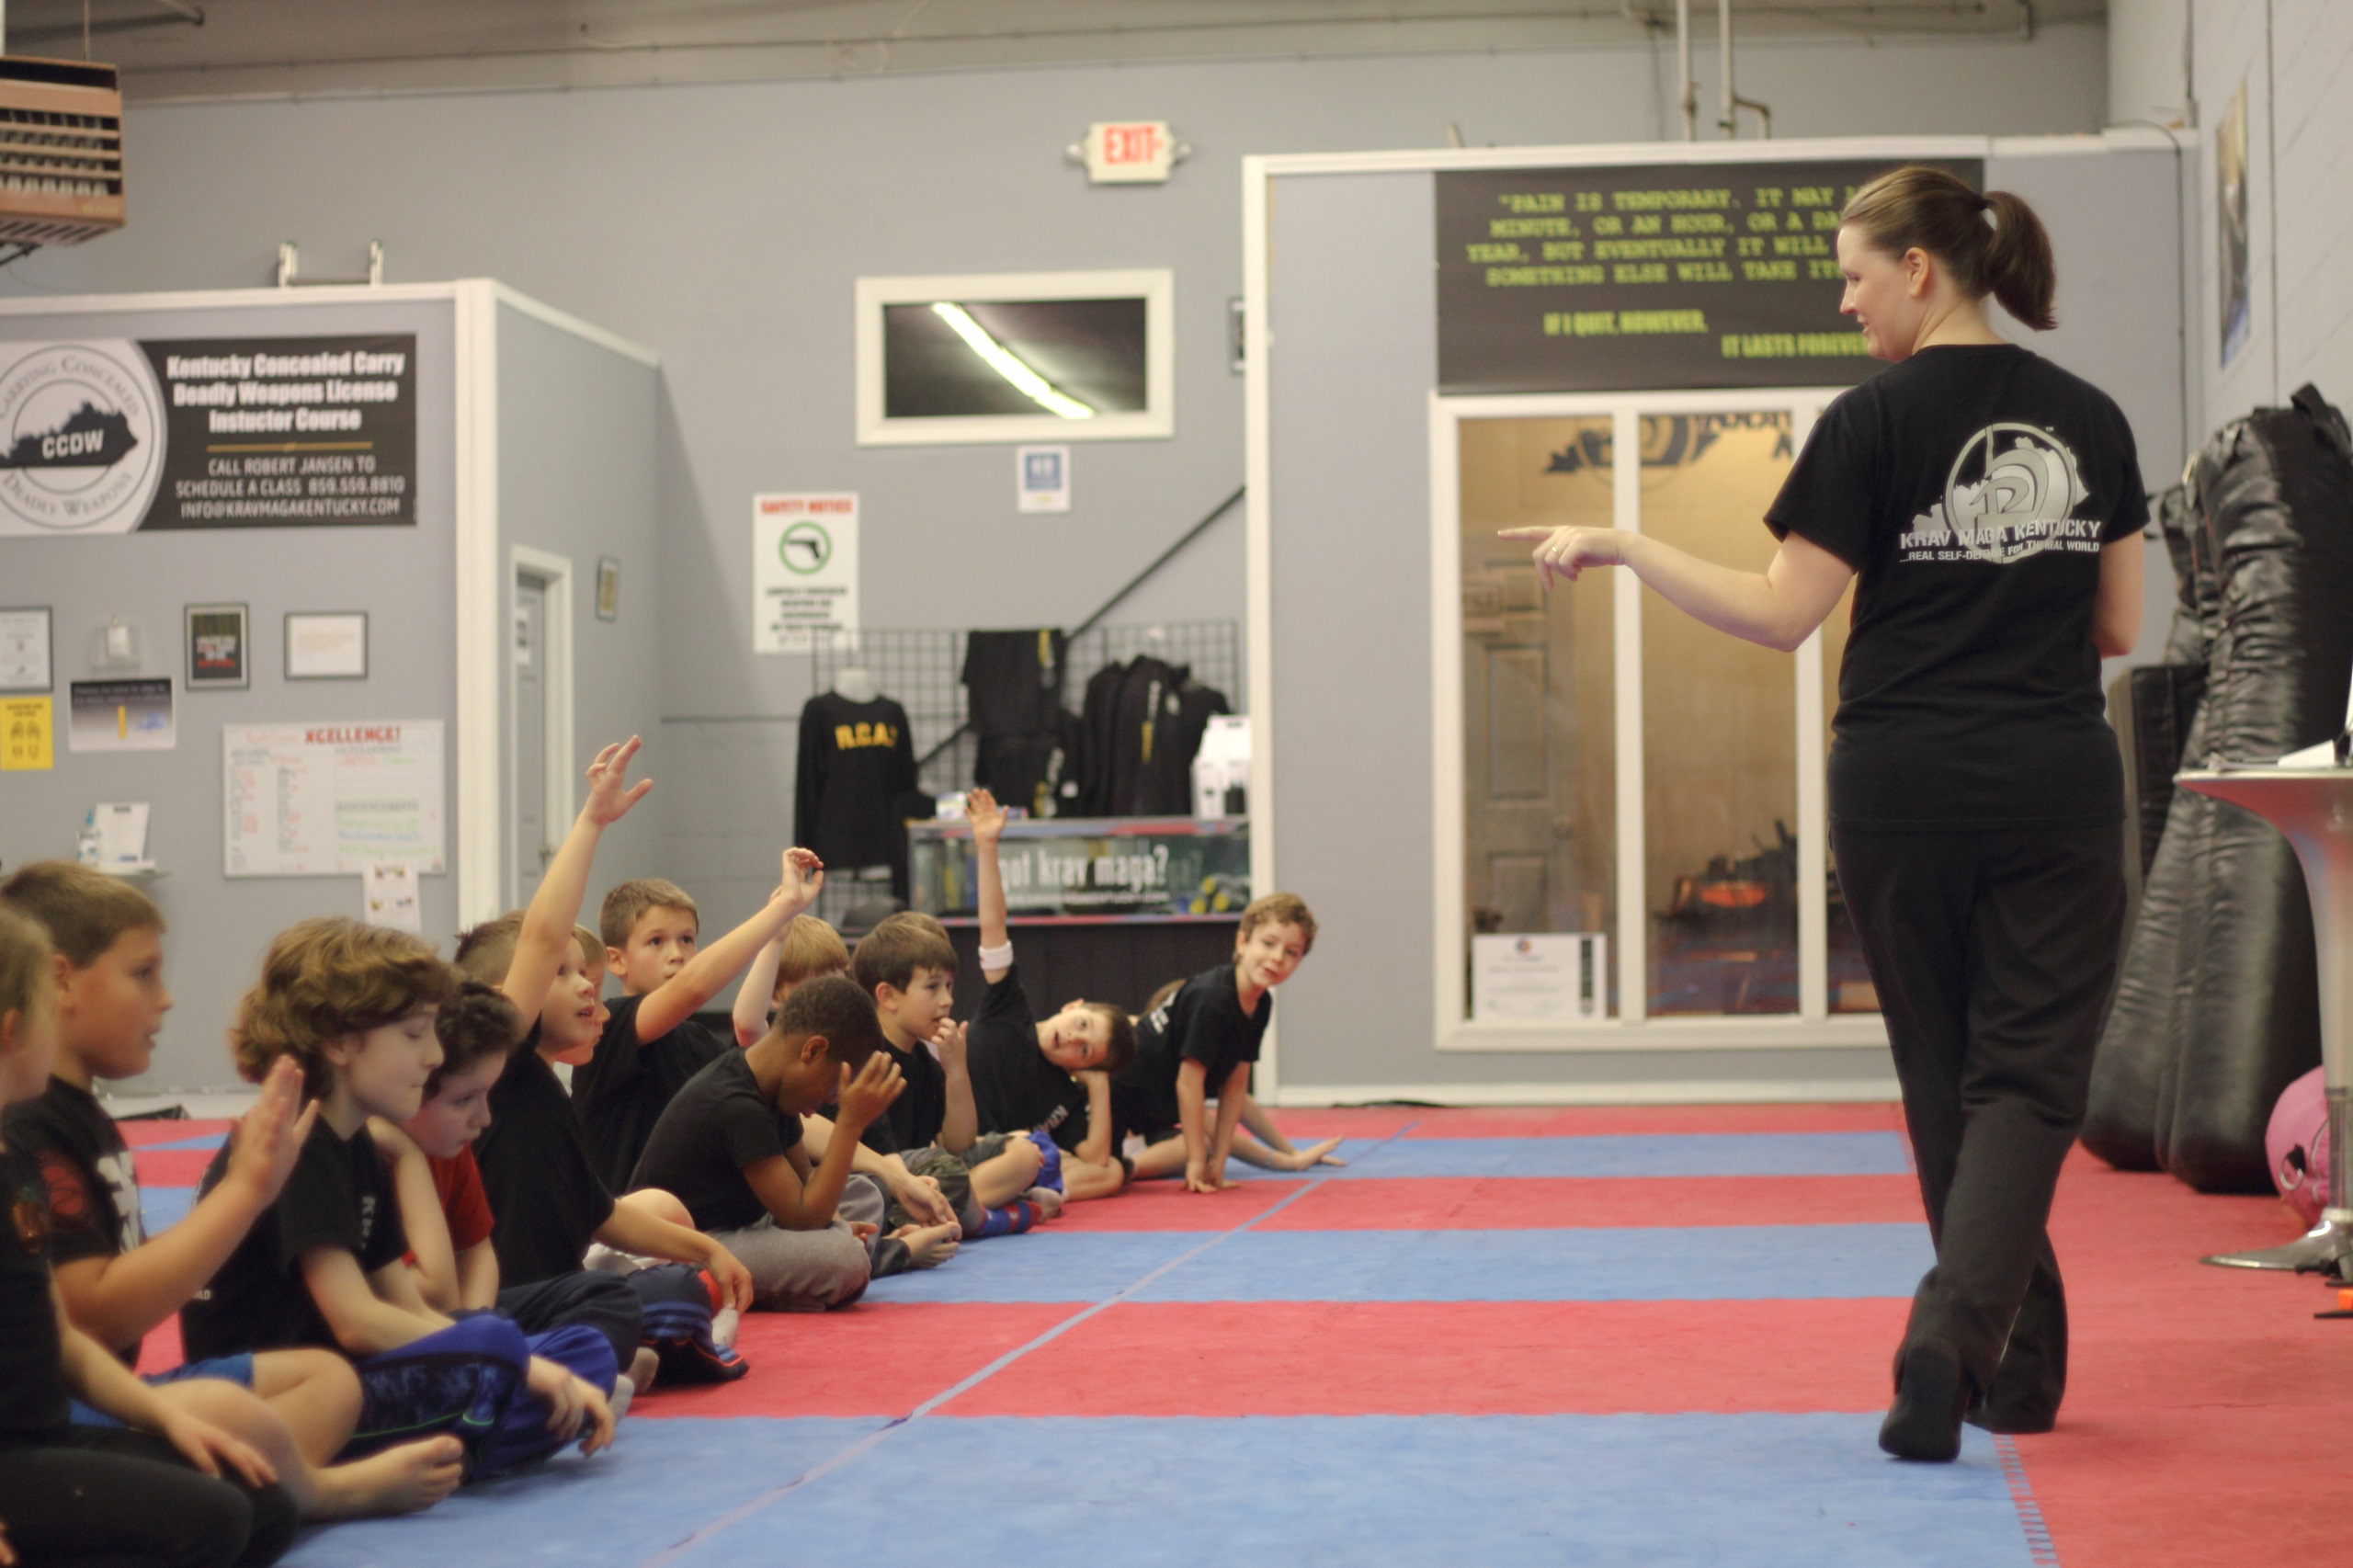 Childrens self defense